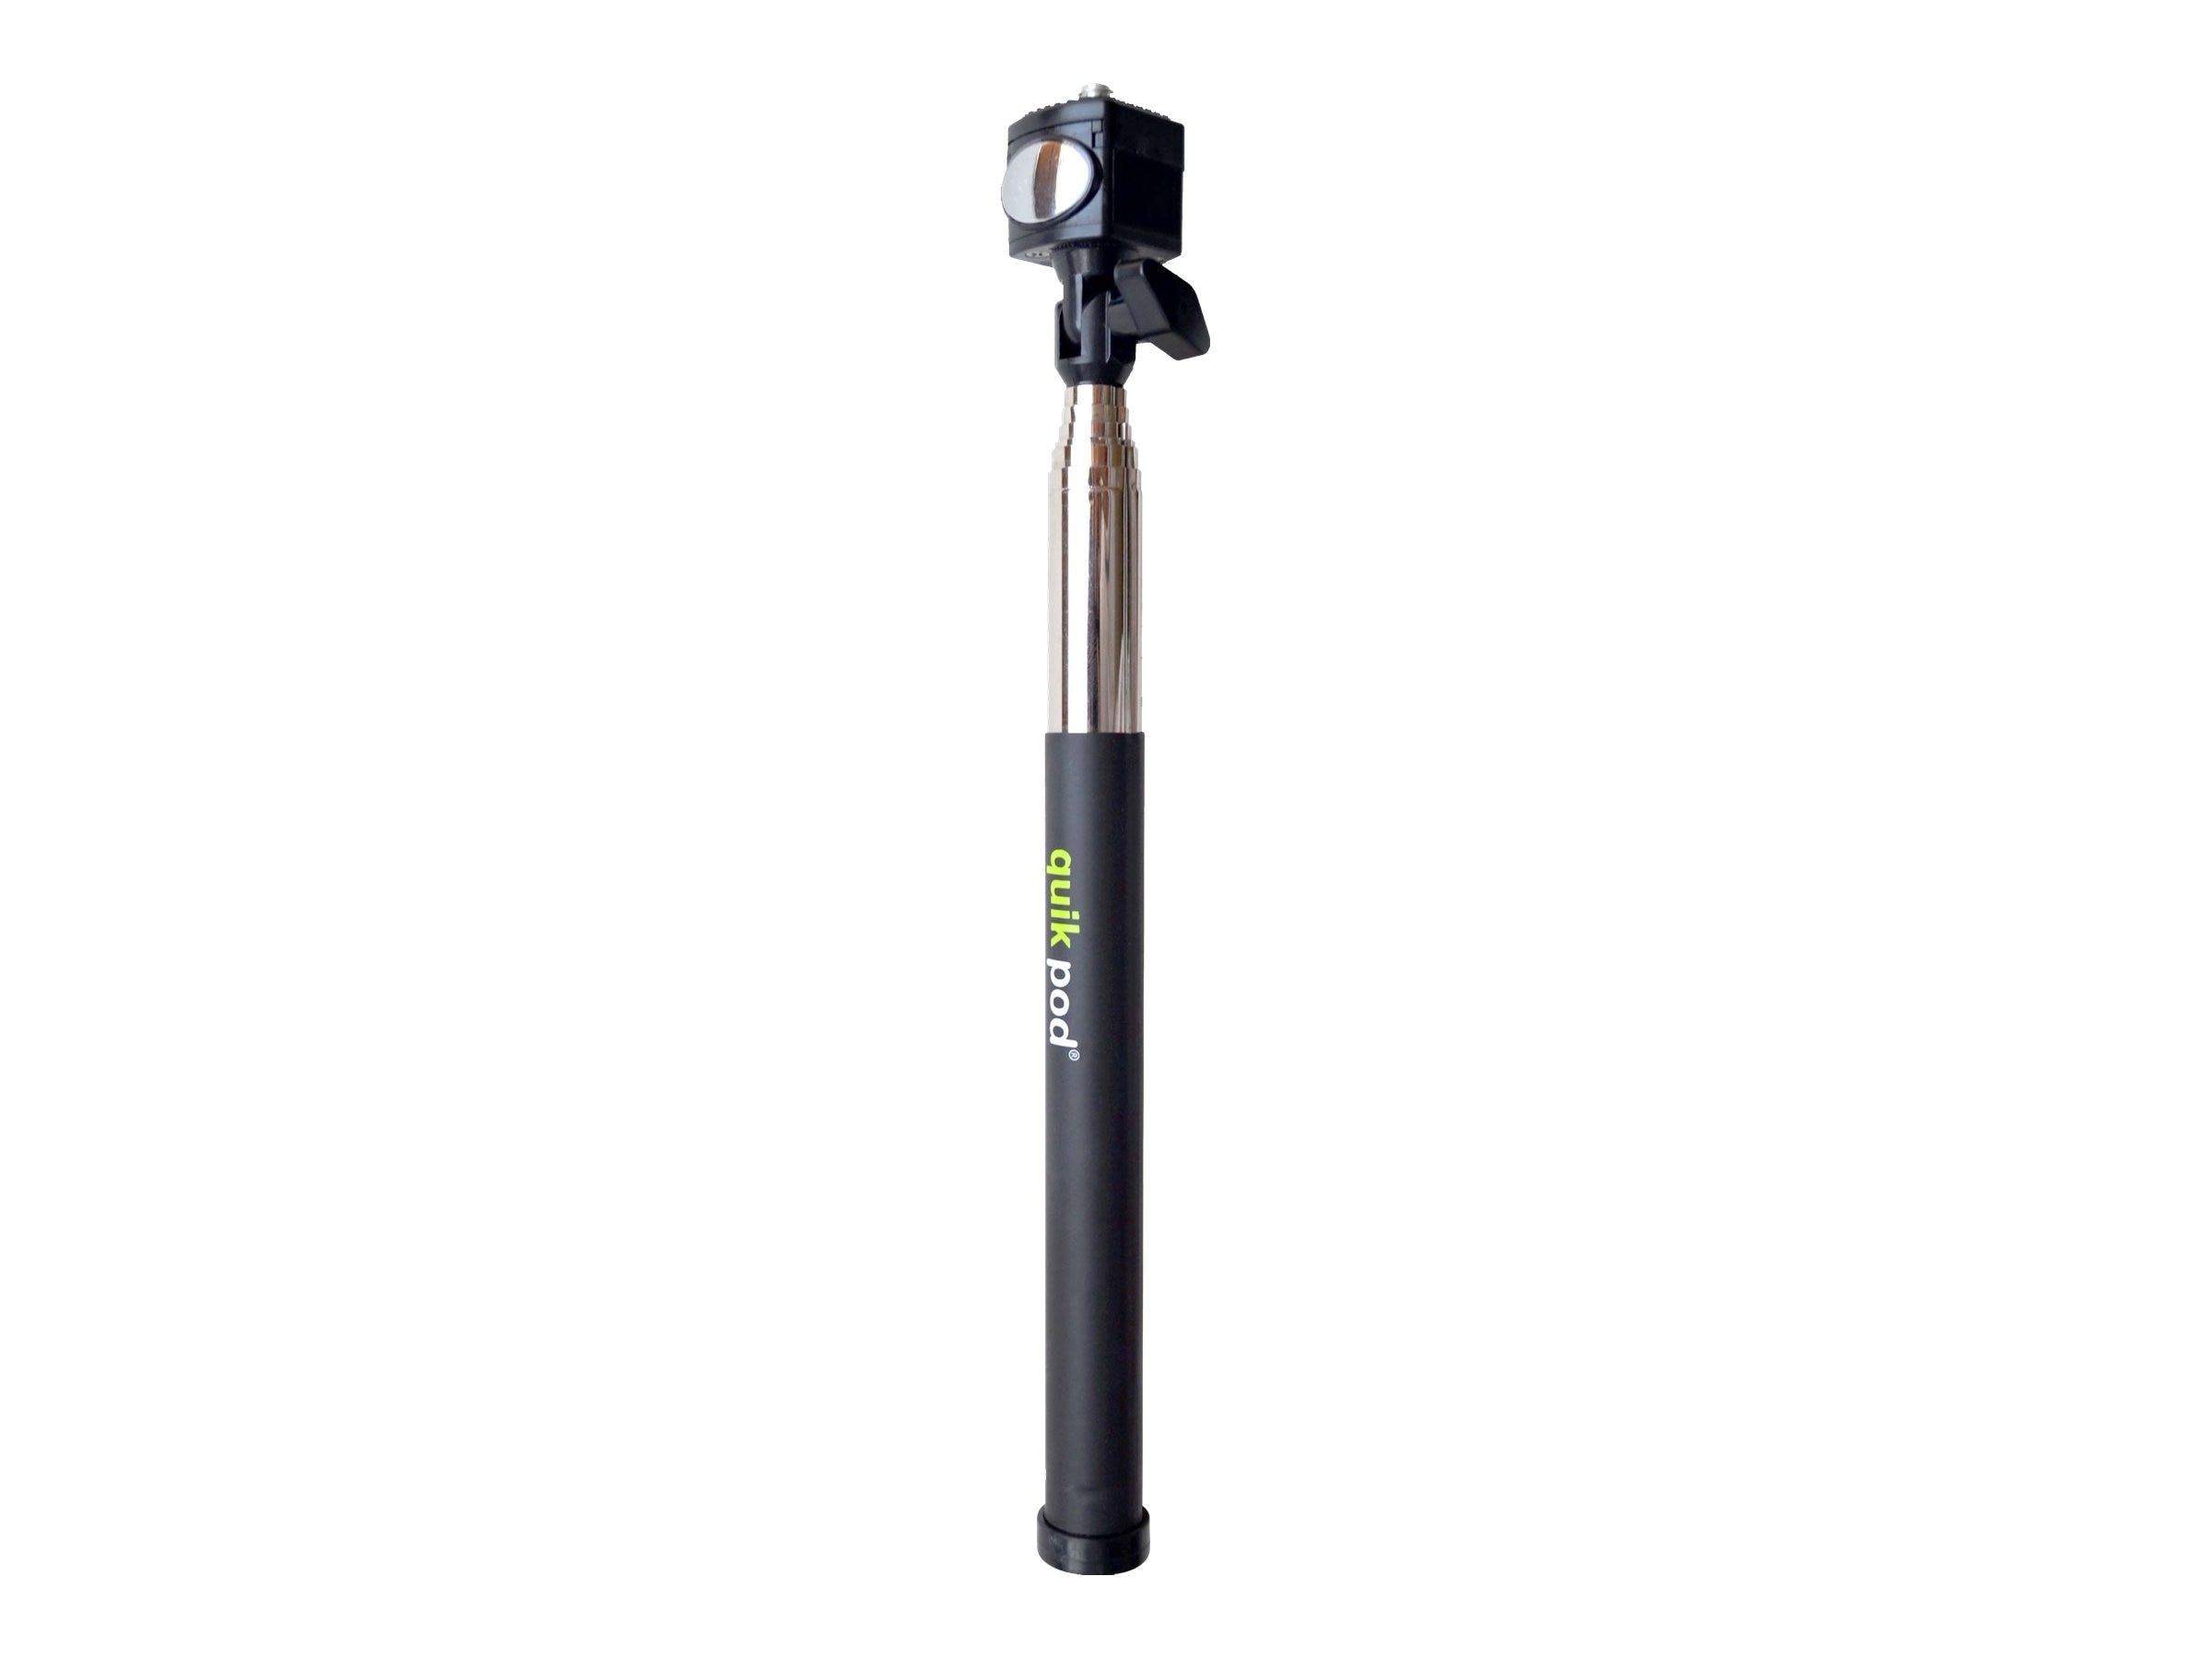 Digipower Quikpod Explorer 2 Monopod, Black, TP-QPXP2, 17463861, Camera & Camcorder Accessories